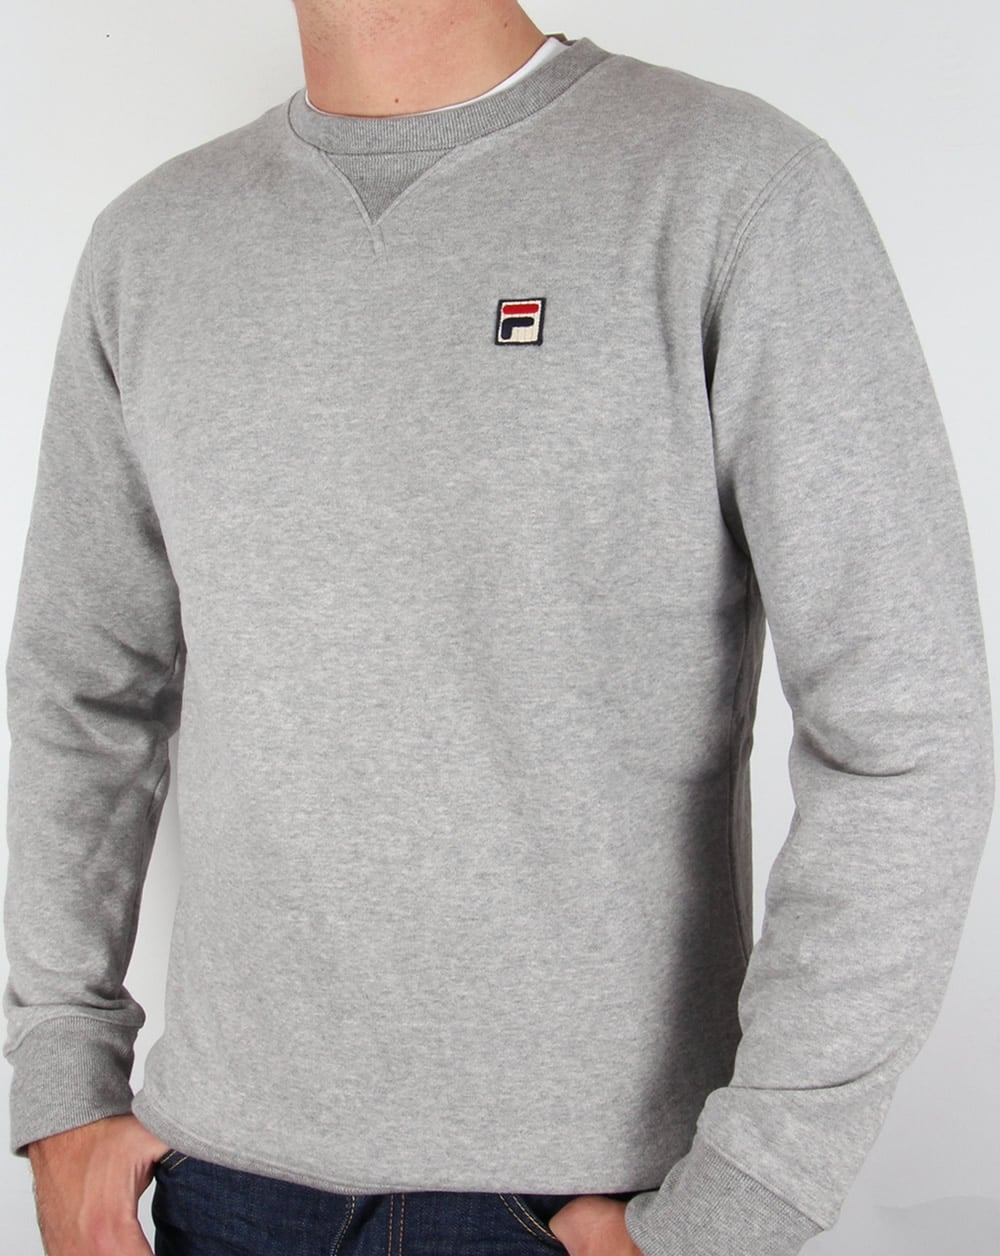 cce3a3f9589 Fila Vintage Brixen Sweatshirt Grey,crew neck,round,sweat,mens